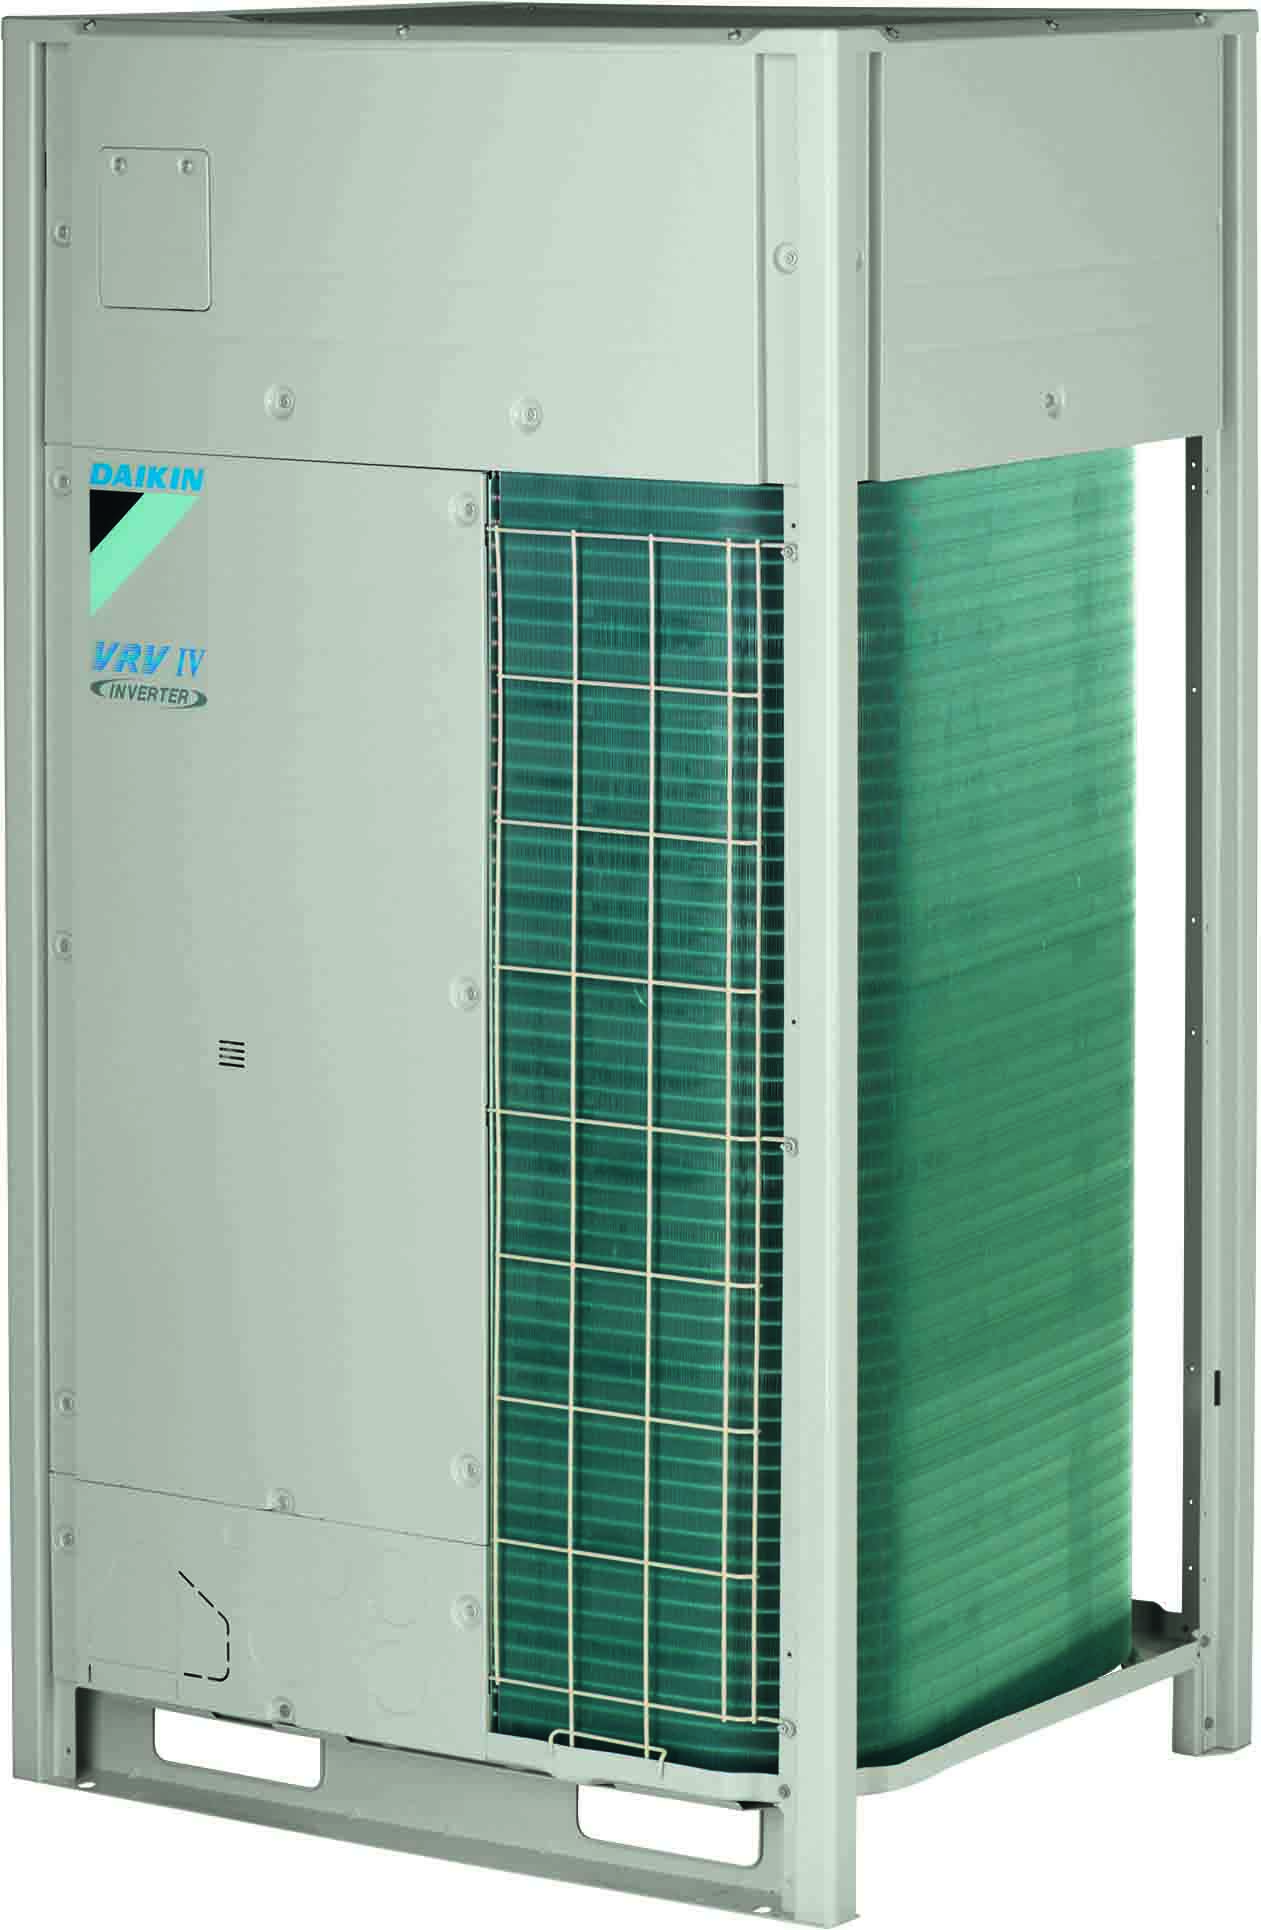 Airvent Airconditioning & Ventilation: Air conditioner